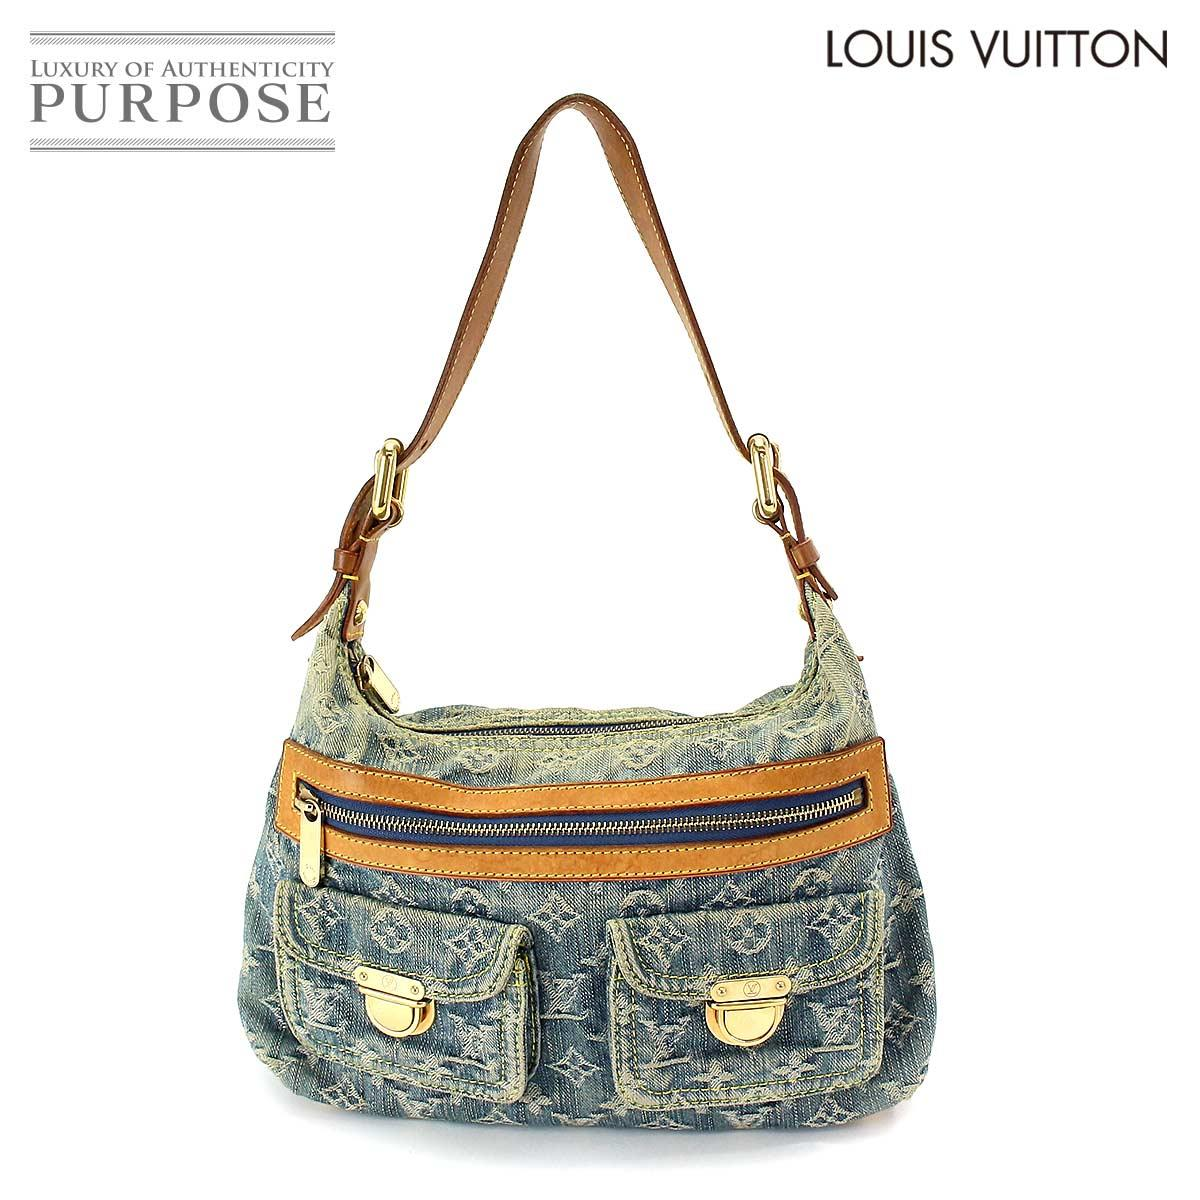 531adac0bfc8 Louis Vuitton LOUIS VUITTON monogram denim buggy PM shoulder bag canvas  blue M95049  used  brand